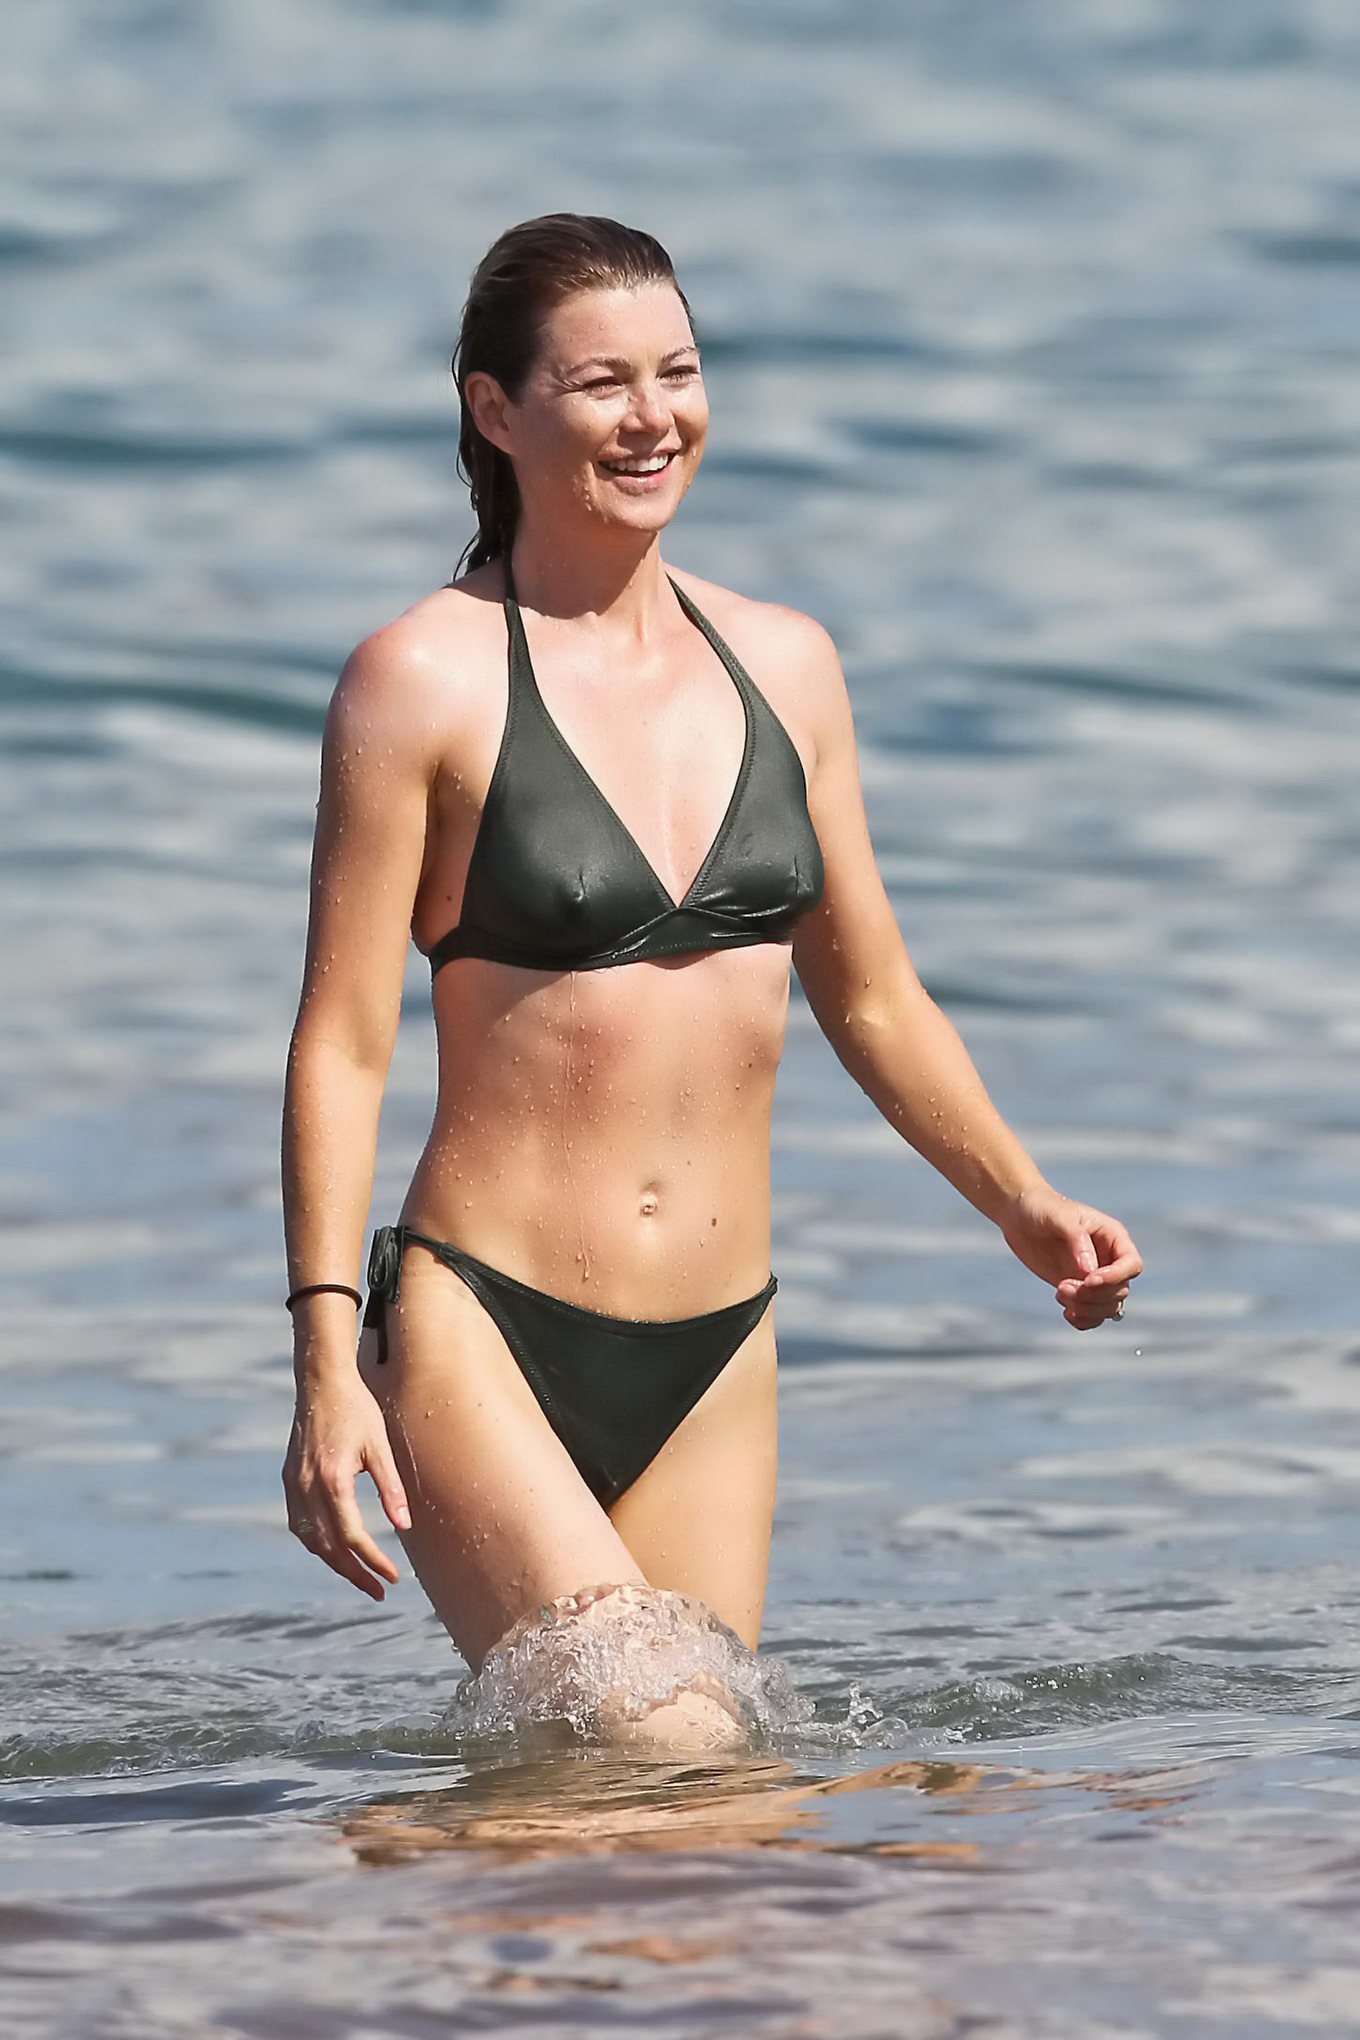 pompeo showing off her hot body in skimpy bikini at the beach in maui